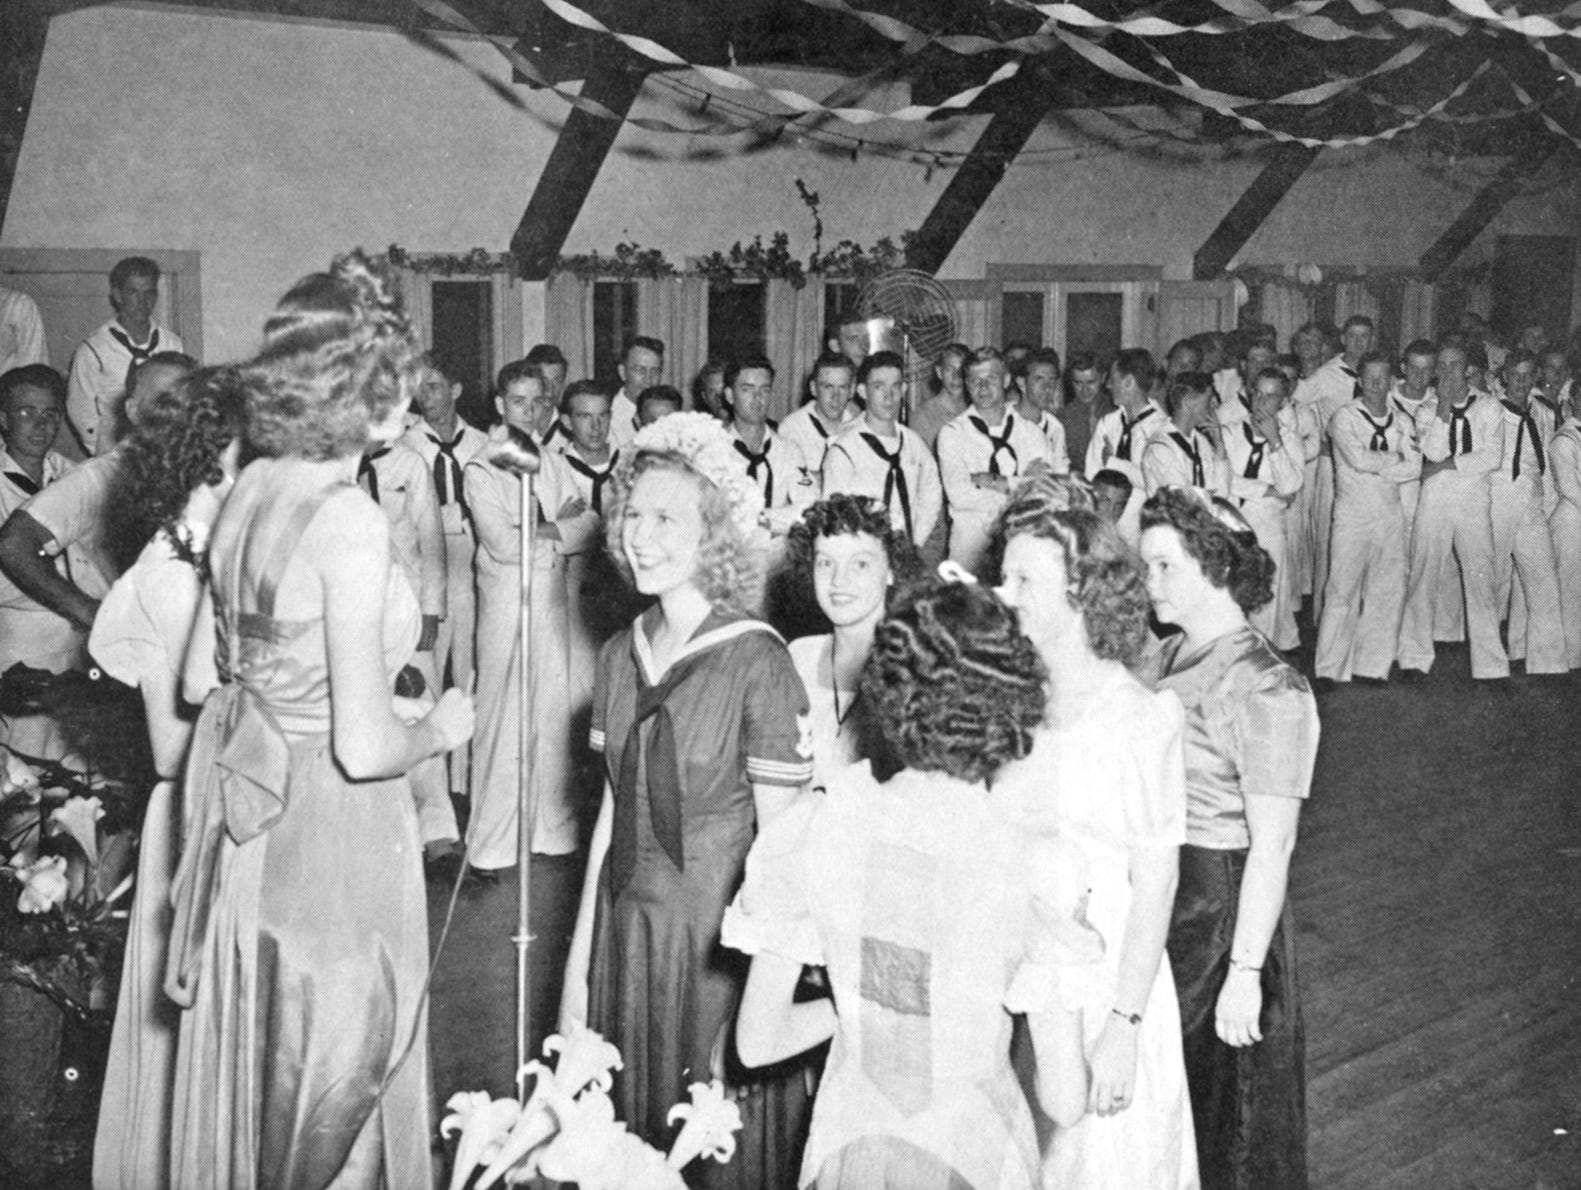 """Florida's Historic Indian River County,"" by Charlotte Lockwood, 1976. Community Center dance. Sailors waited for a chance to dance with the girls at this April 29, 1943 dance at the Community Center in Vero Beach."